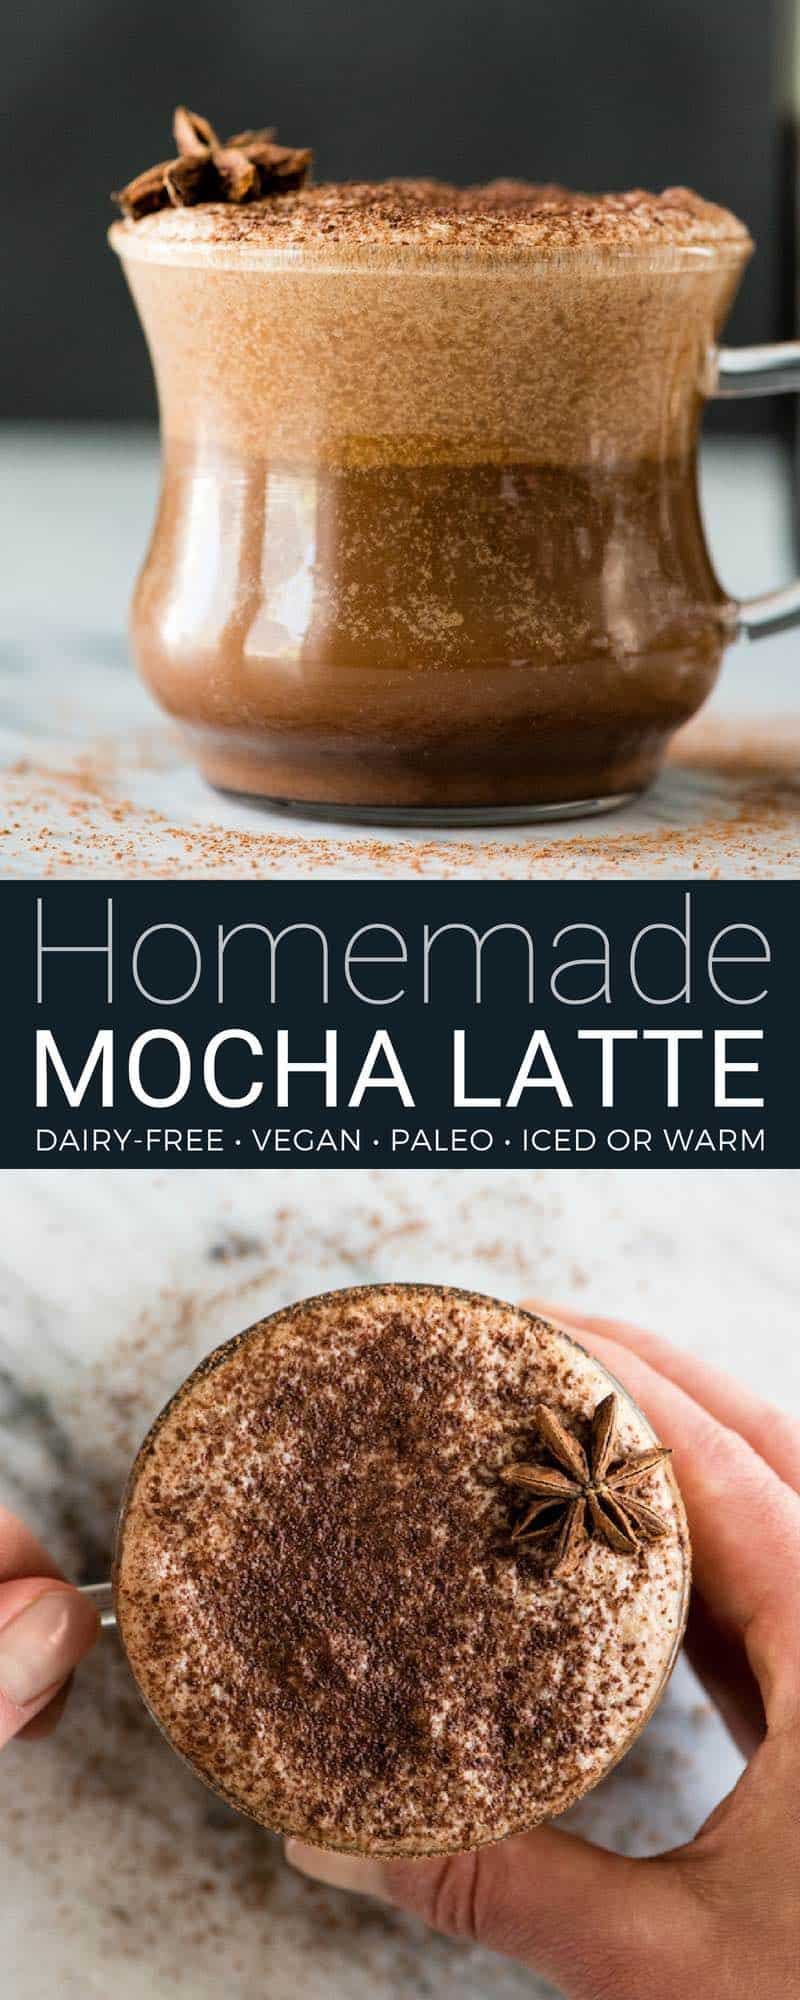 This dairy-free mocha latte recipe is so amazing you will feel like you are drinking a high-end latte from a fancy coffee shop...but in the comfort of your own home and for a fraction of the price! It's easy to make, healthy (paleo, vegan, with NO refined sugar) and out-of-this-world delicious! #dairyfree #mocha #latte #recipe #paleo #vegan #healthy #mochalatte #vitamix